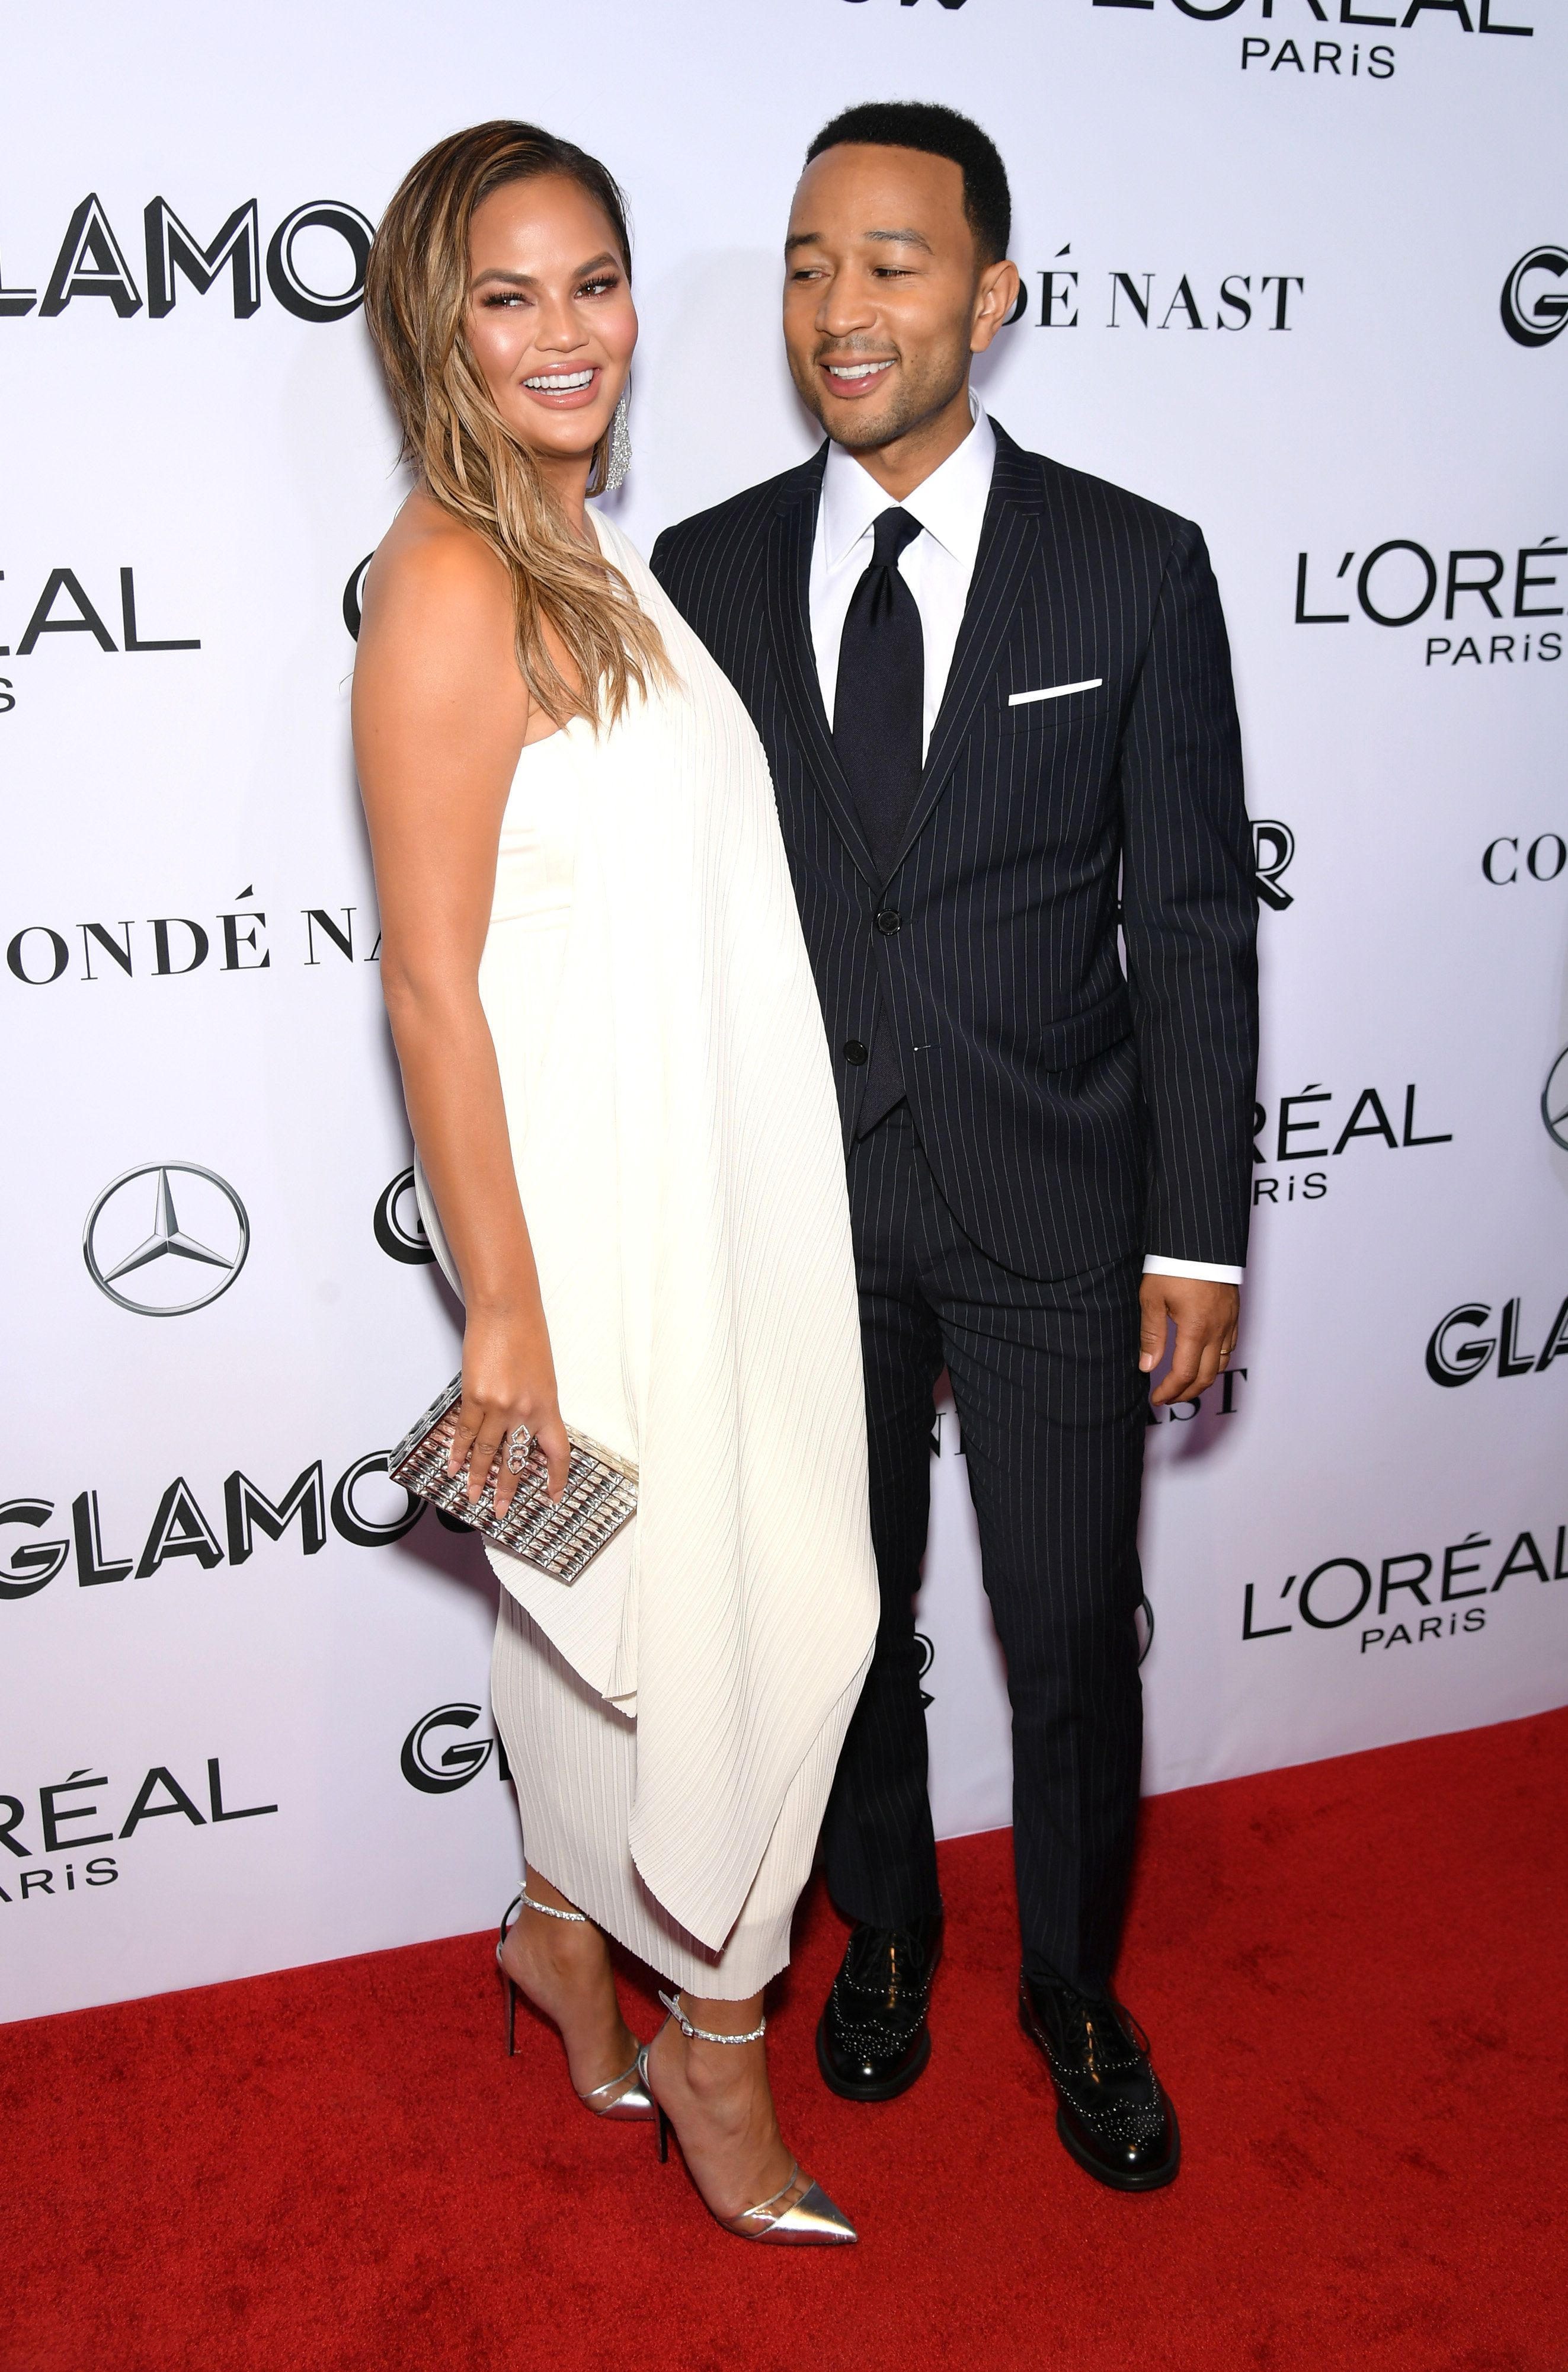 NEW YORK, NEW YORK - NOVEMBER 12: Chrissy Teigen and John Legend attend Glamour Women of the Year Awards 2018 at Spring Studios on November 12, 2018 in New York City. (Photo by Mike Coppola/WireImage,)